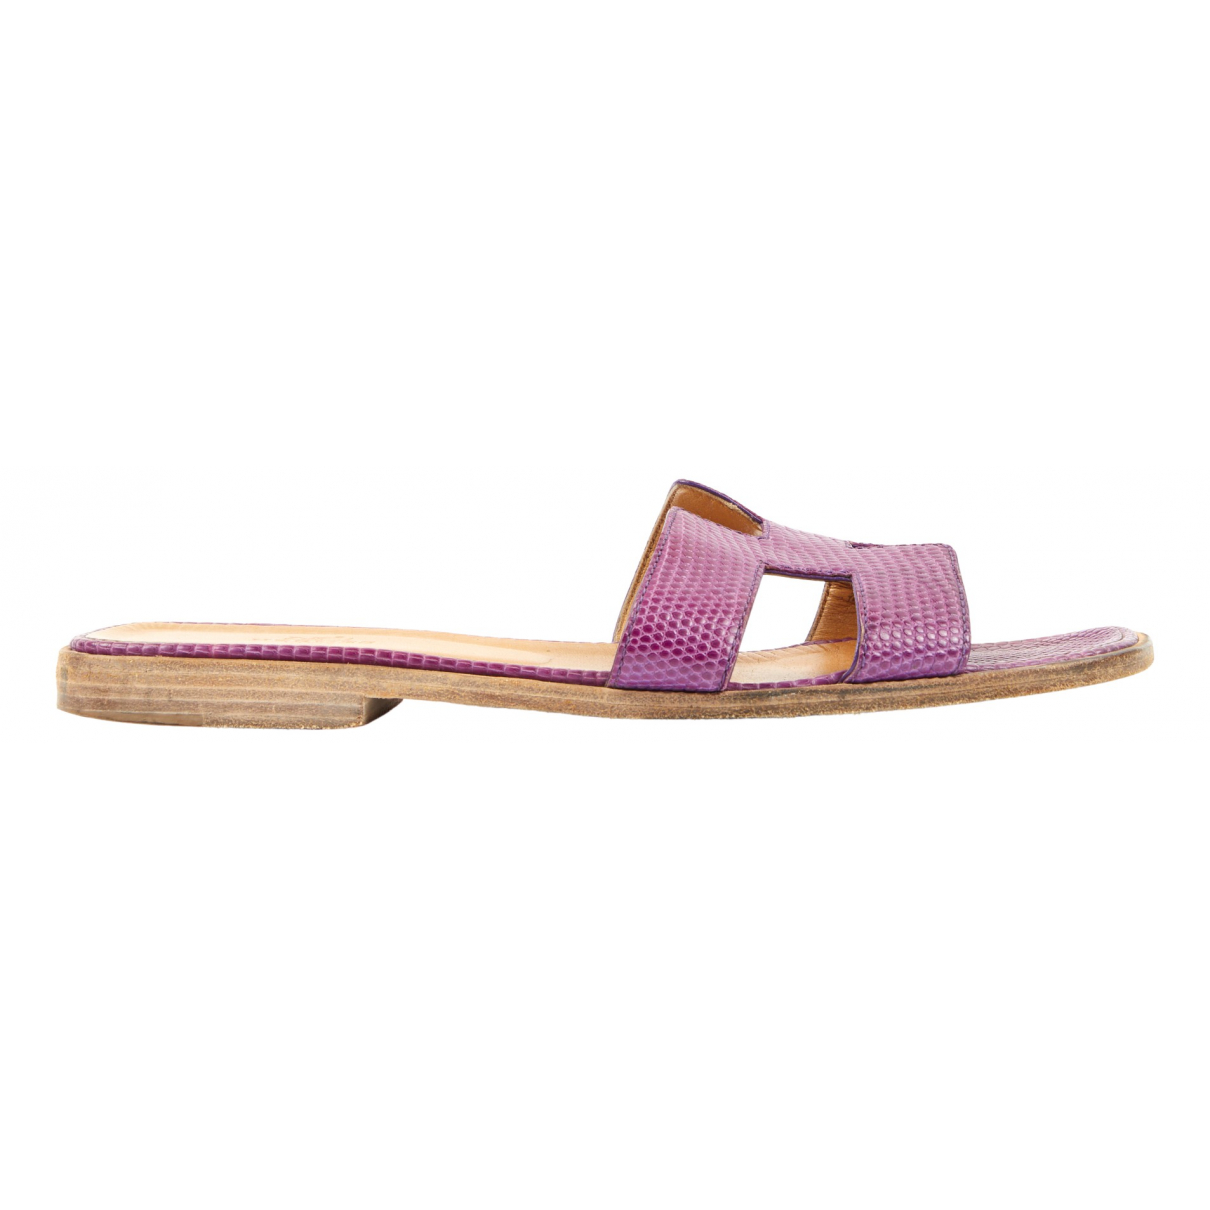 Hermès Oran Purple Lizard Sandals for Women 39 EU